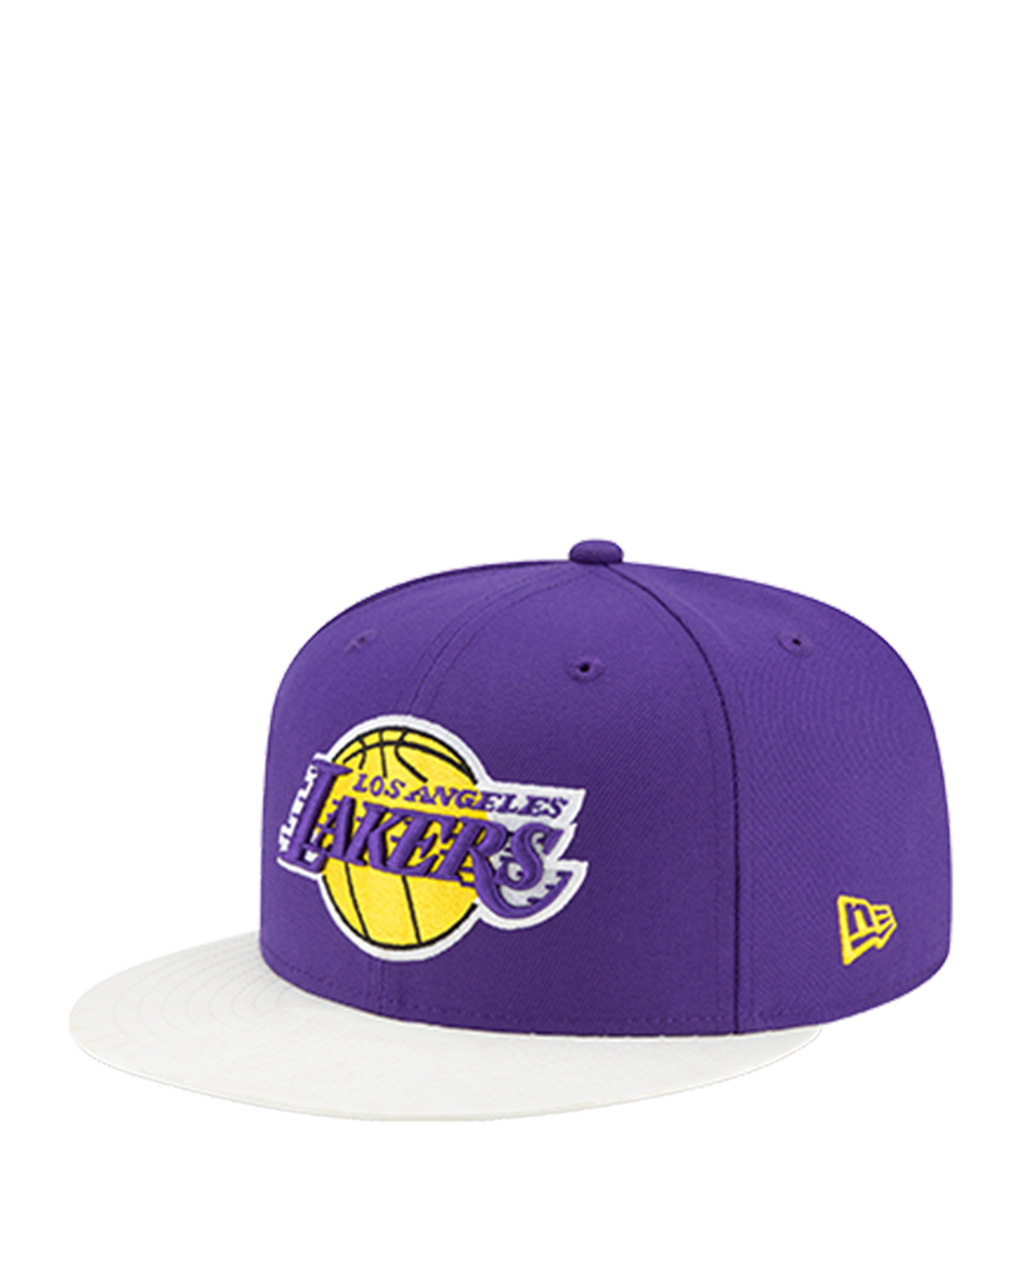 Los Angeles Lakers 9FIFTY Visor Flare UV Act Snapback Cap - Purple